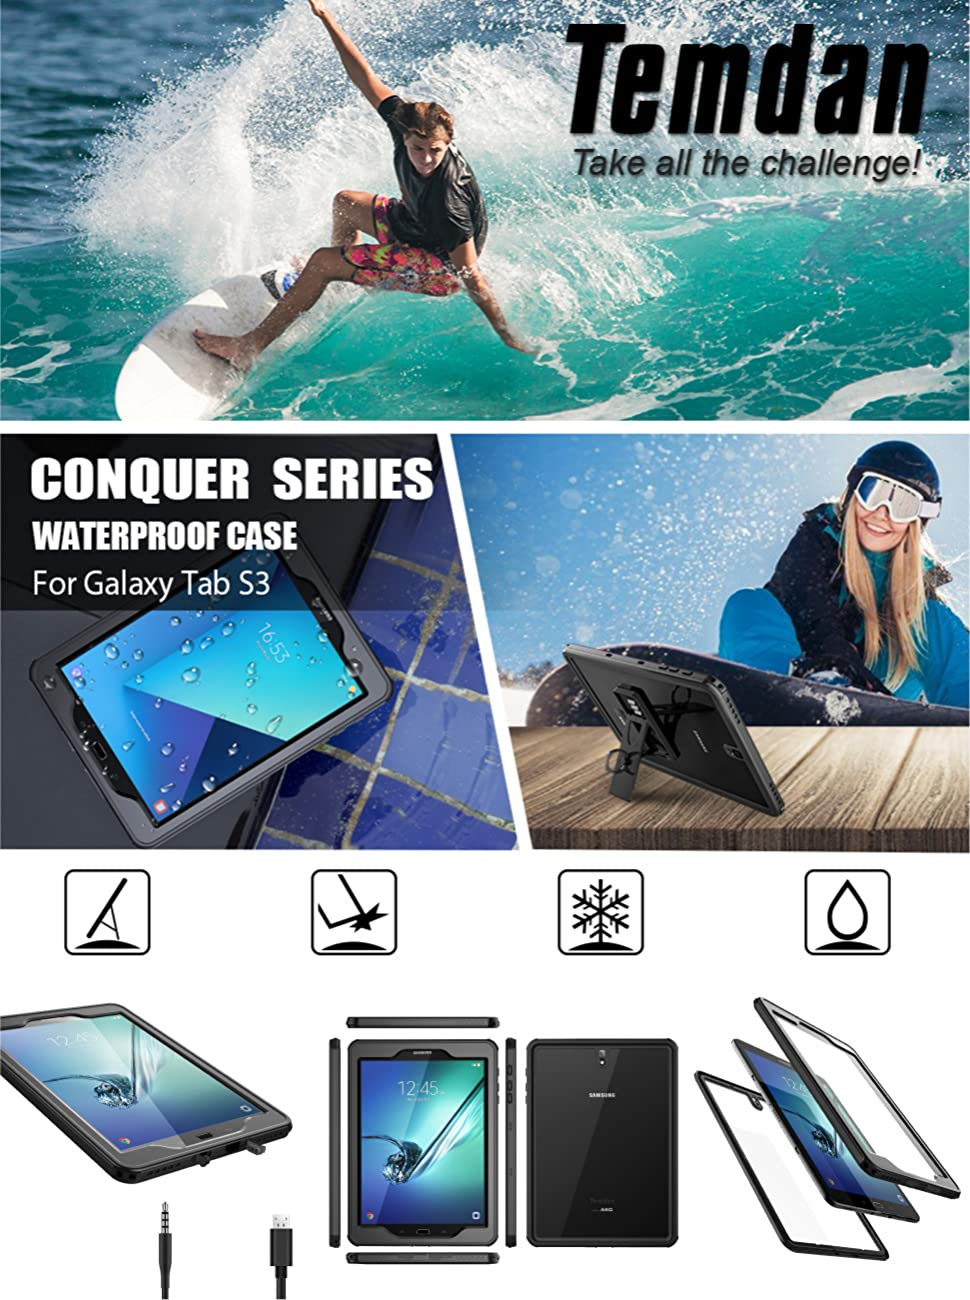 new concept 23c61 af059 Samsung Galaxy Tab S3 Waterproof Case, Temdan IPX8 Waterproof case with  Built-in Screen Full-Body Kickstand Rugged Protective Case for Galaxy Tab  S3 ...